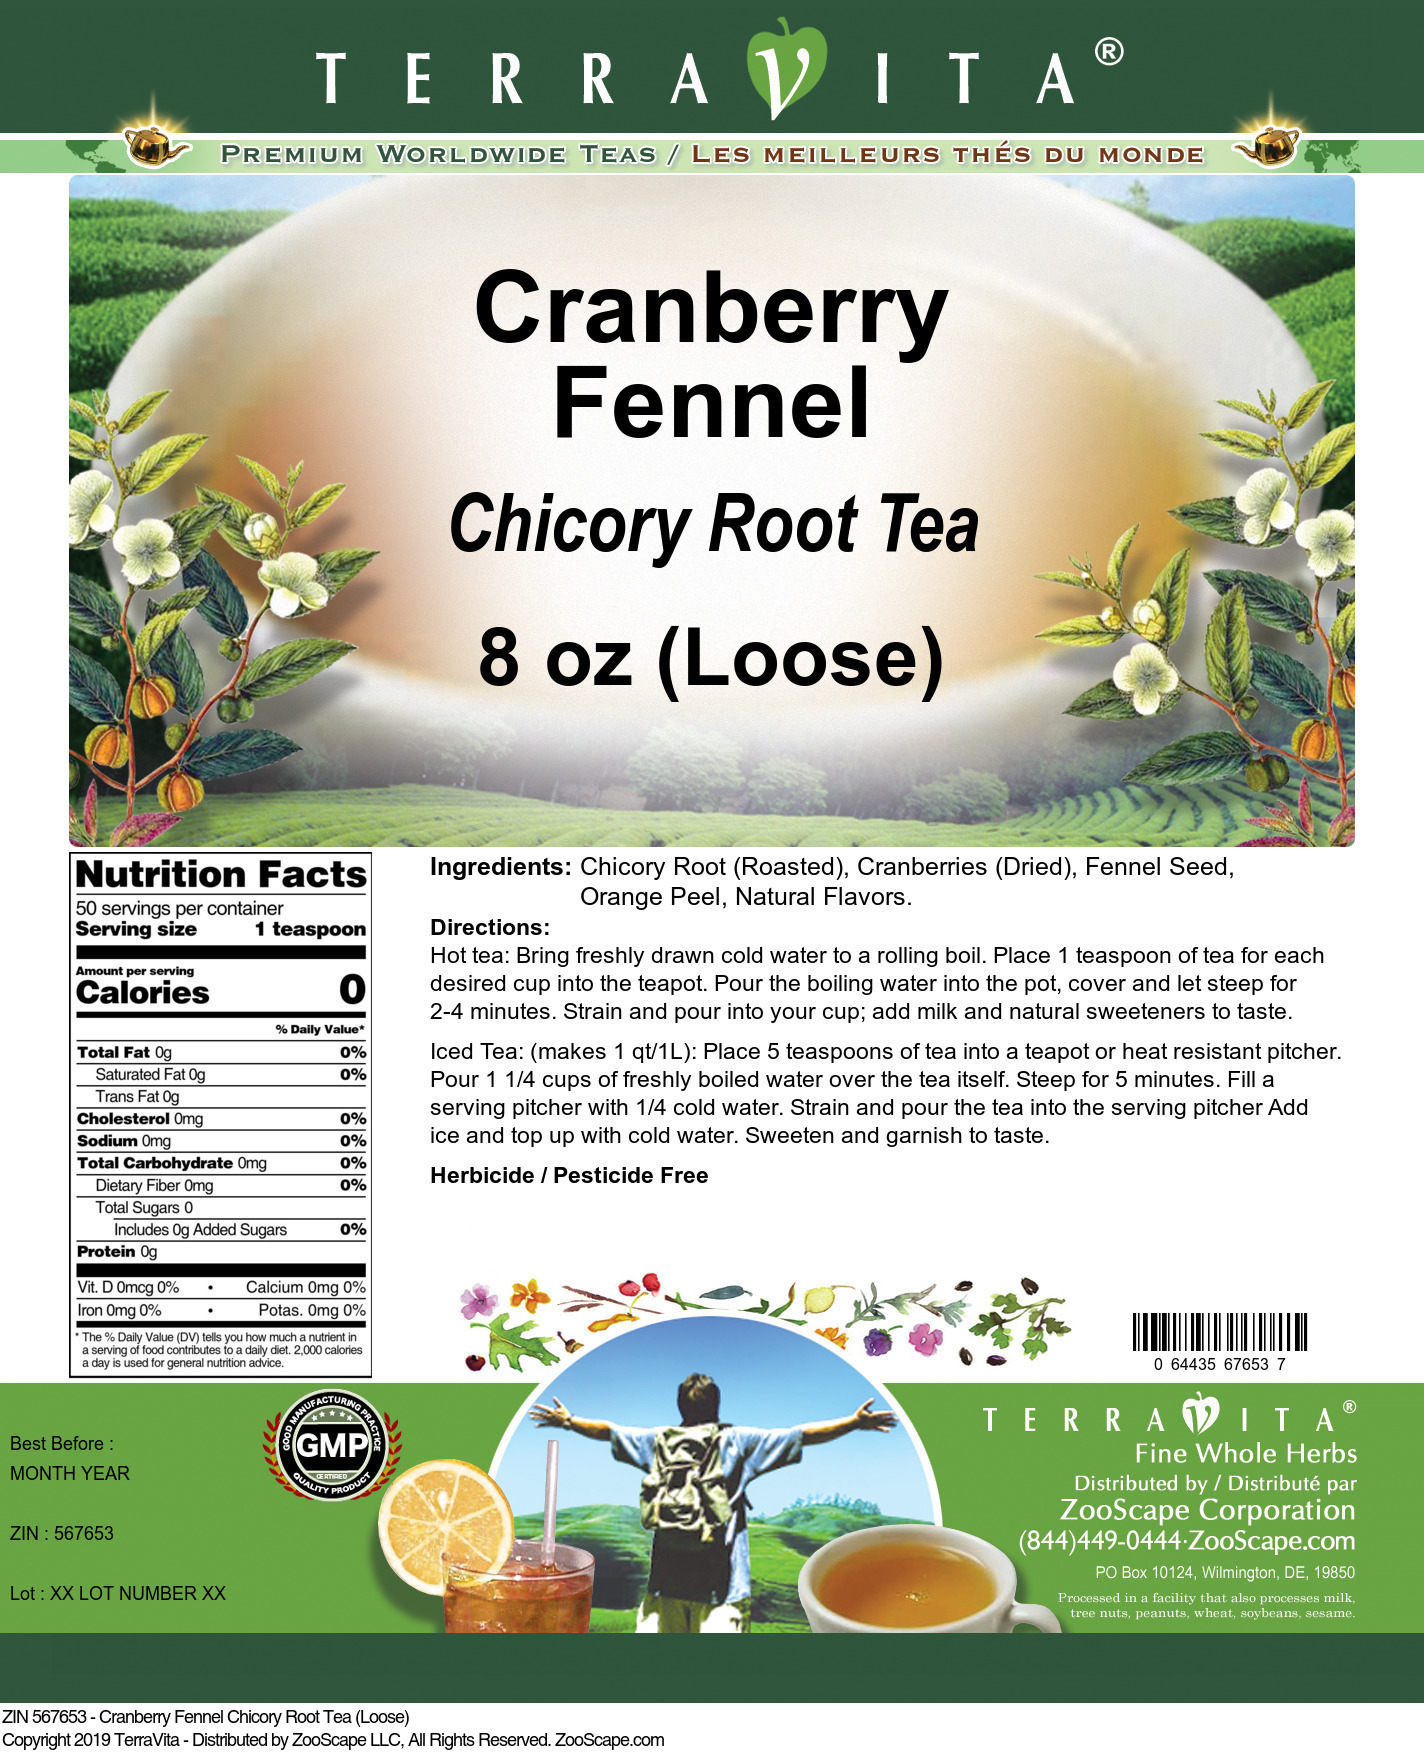 Cranberry Fennel Chicory Root Tea (Loose)